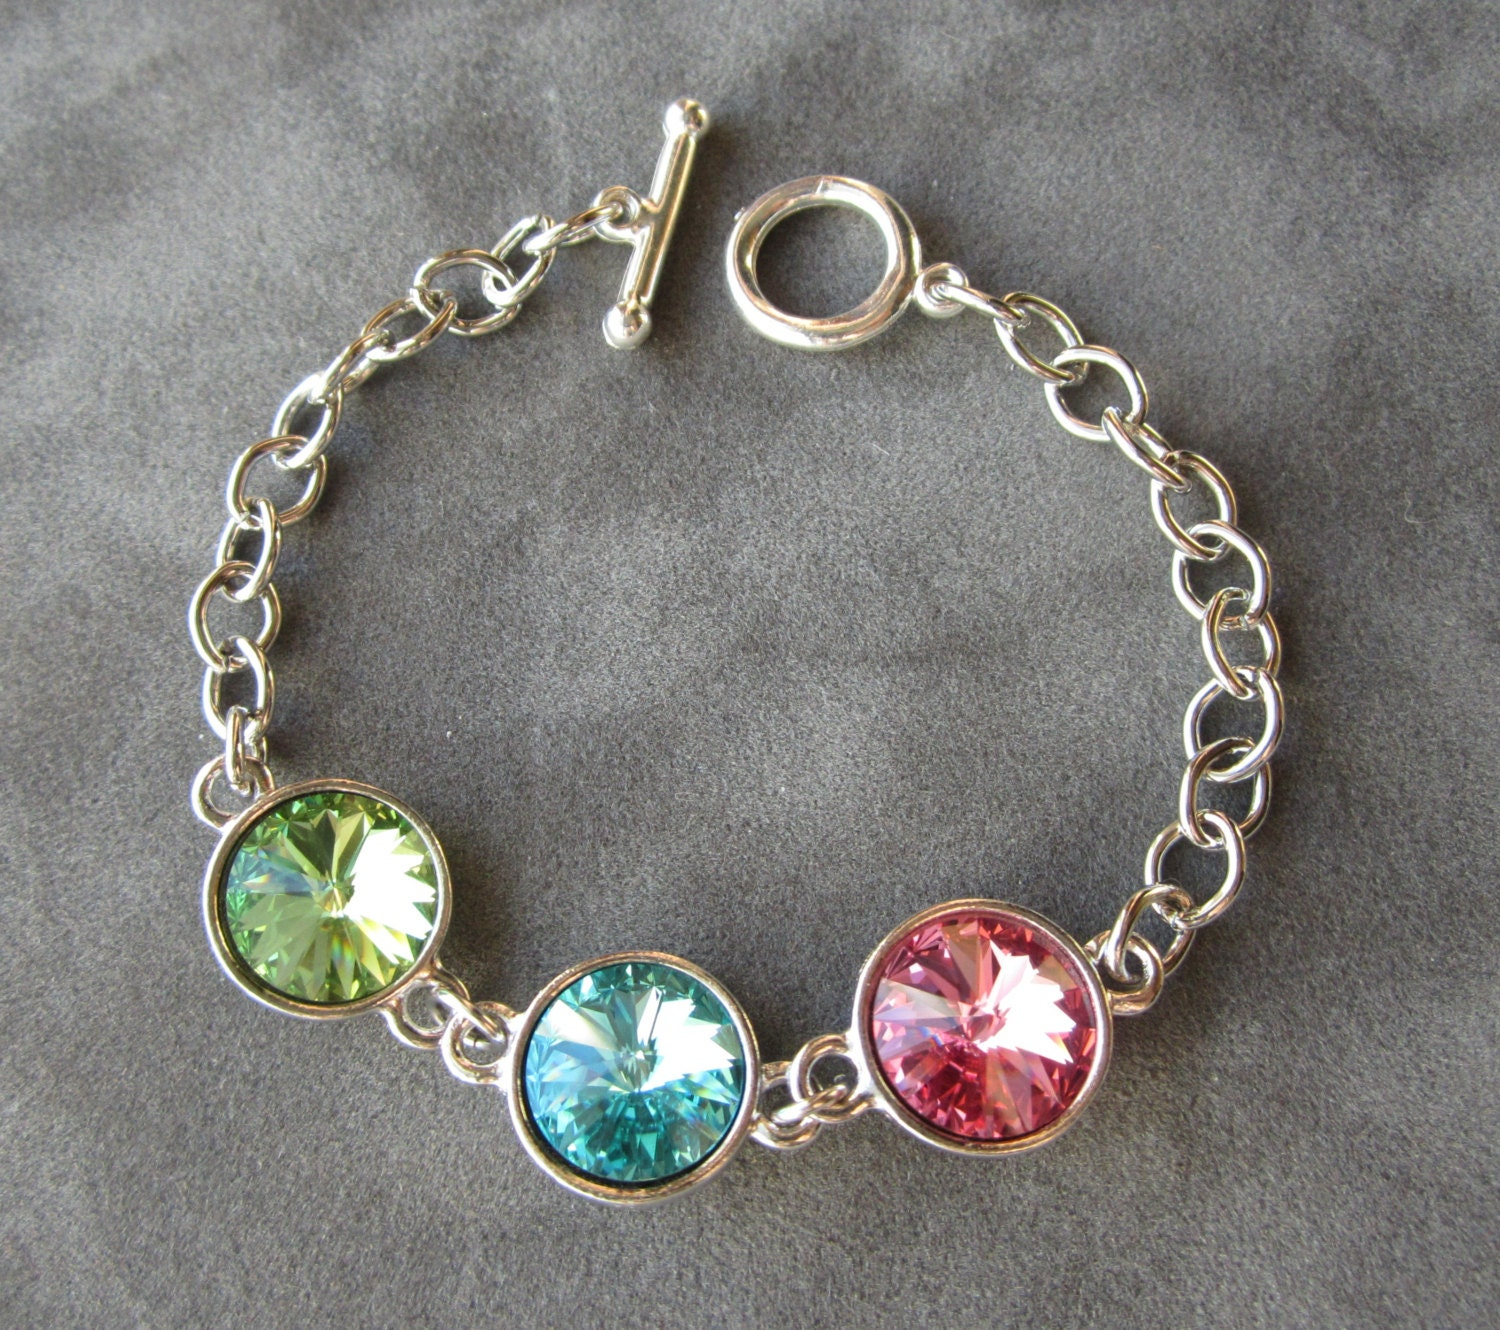 Mothers Charm Bracelet: Grandmothers Birthstone Jewelry Mother's Bracelet